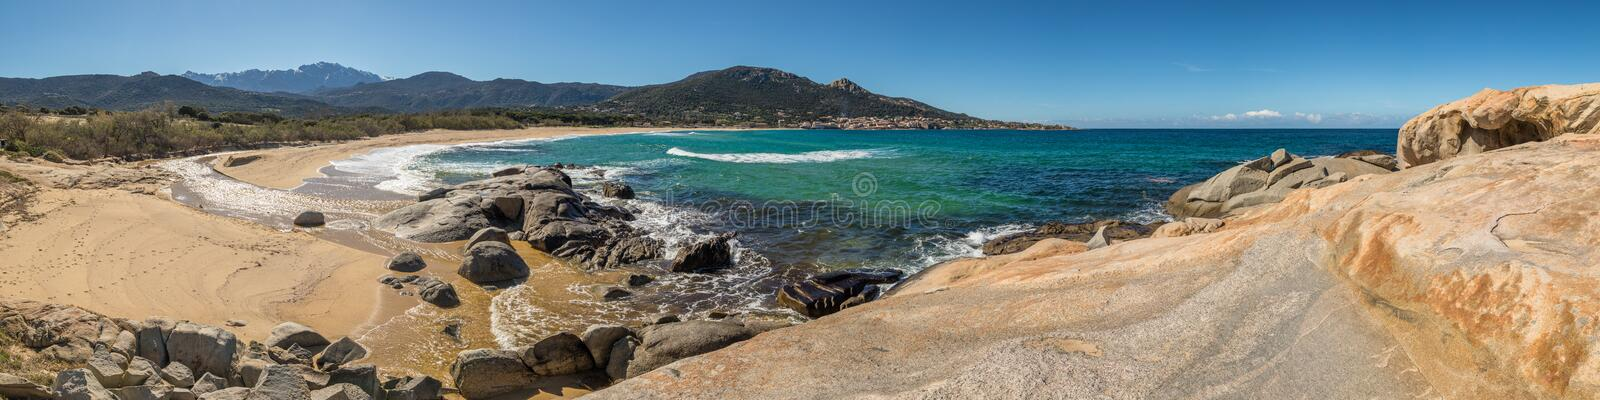 Panoramic view of Algajola beach and village in Corsica royalty free stock photo